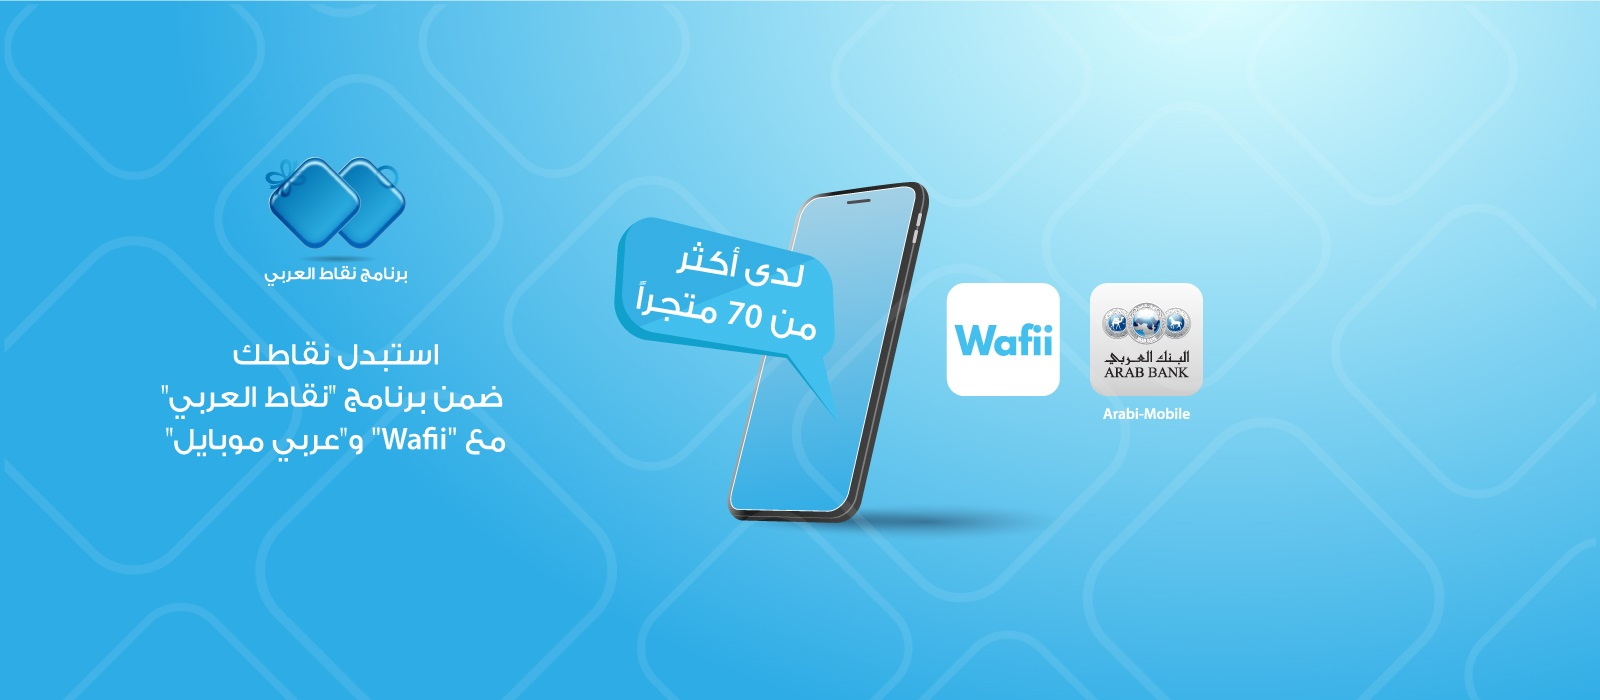 Website-banner-1600x700-A Wafii